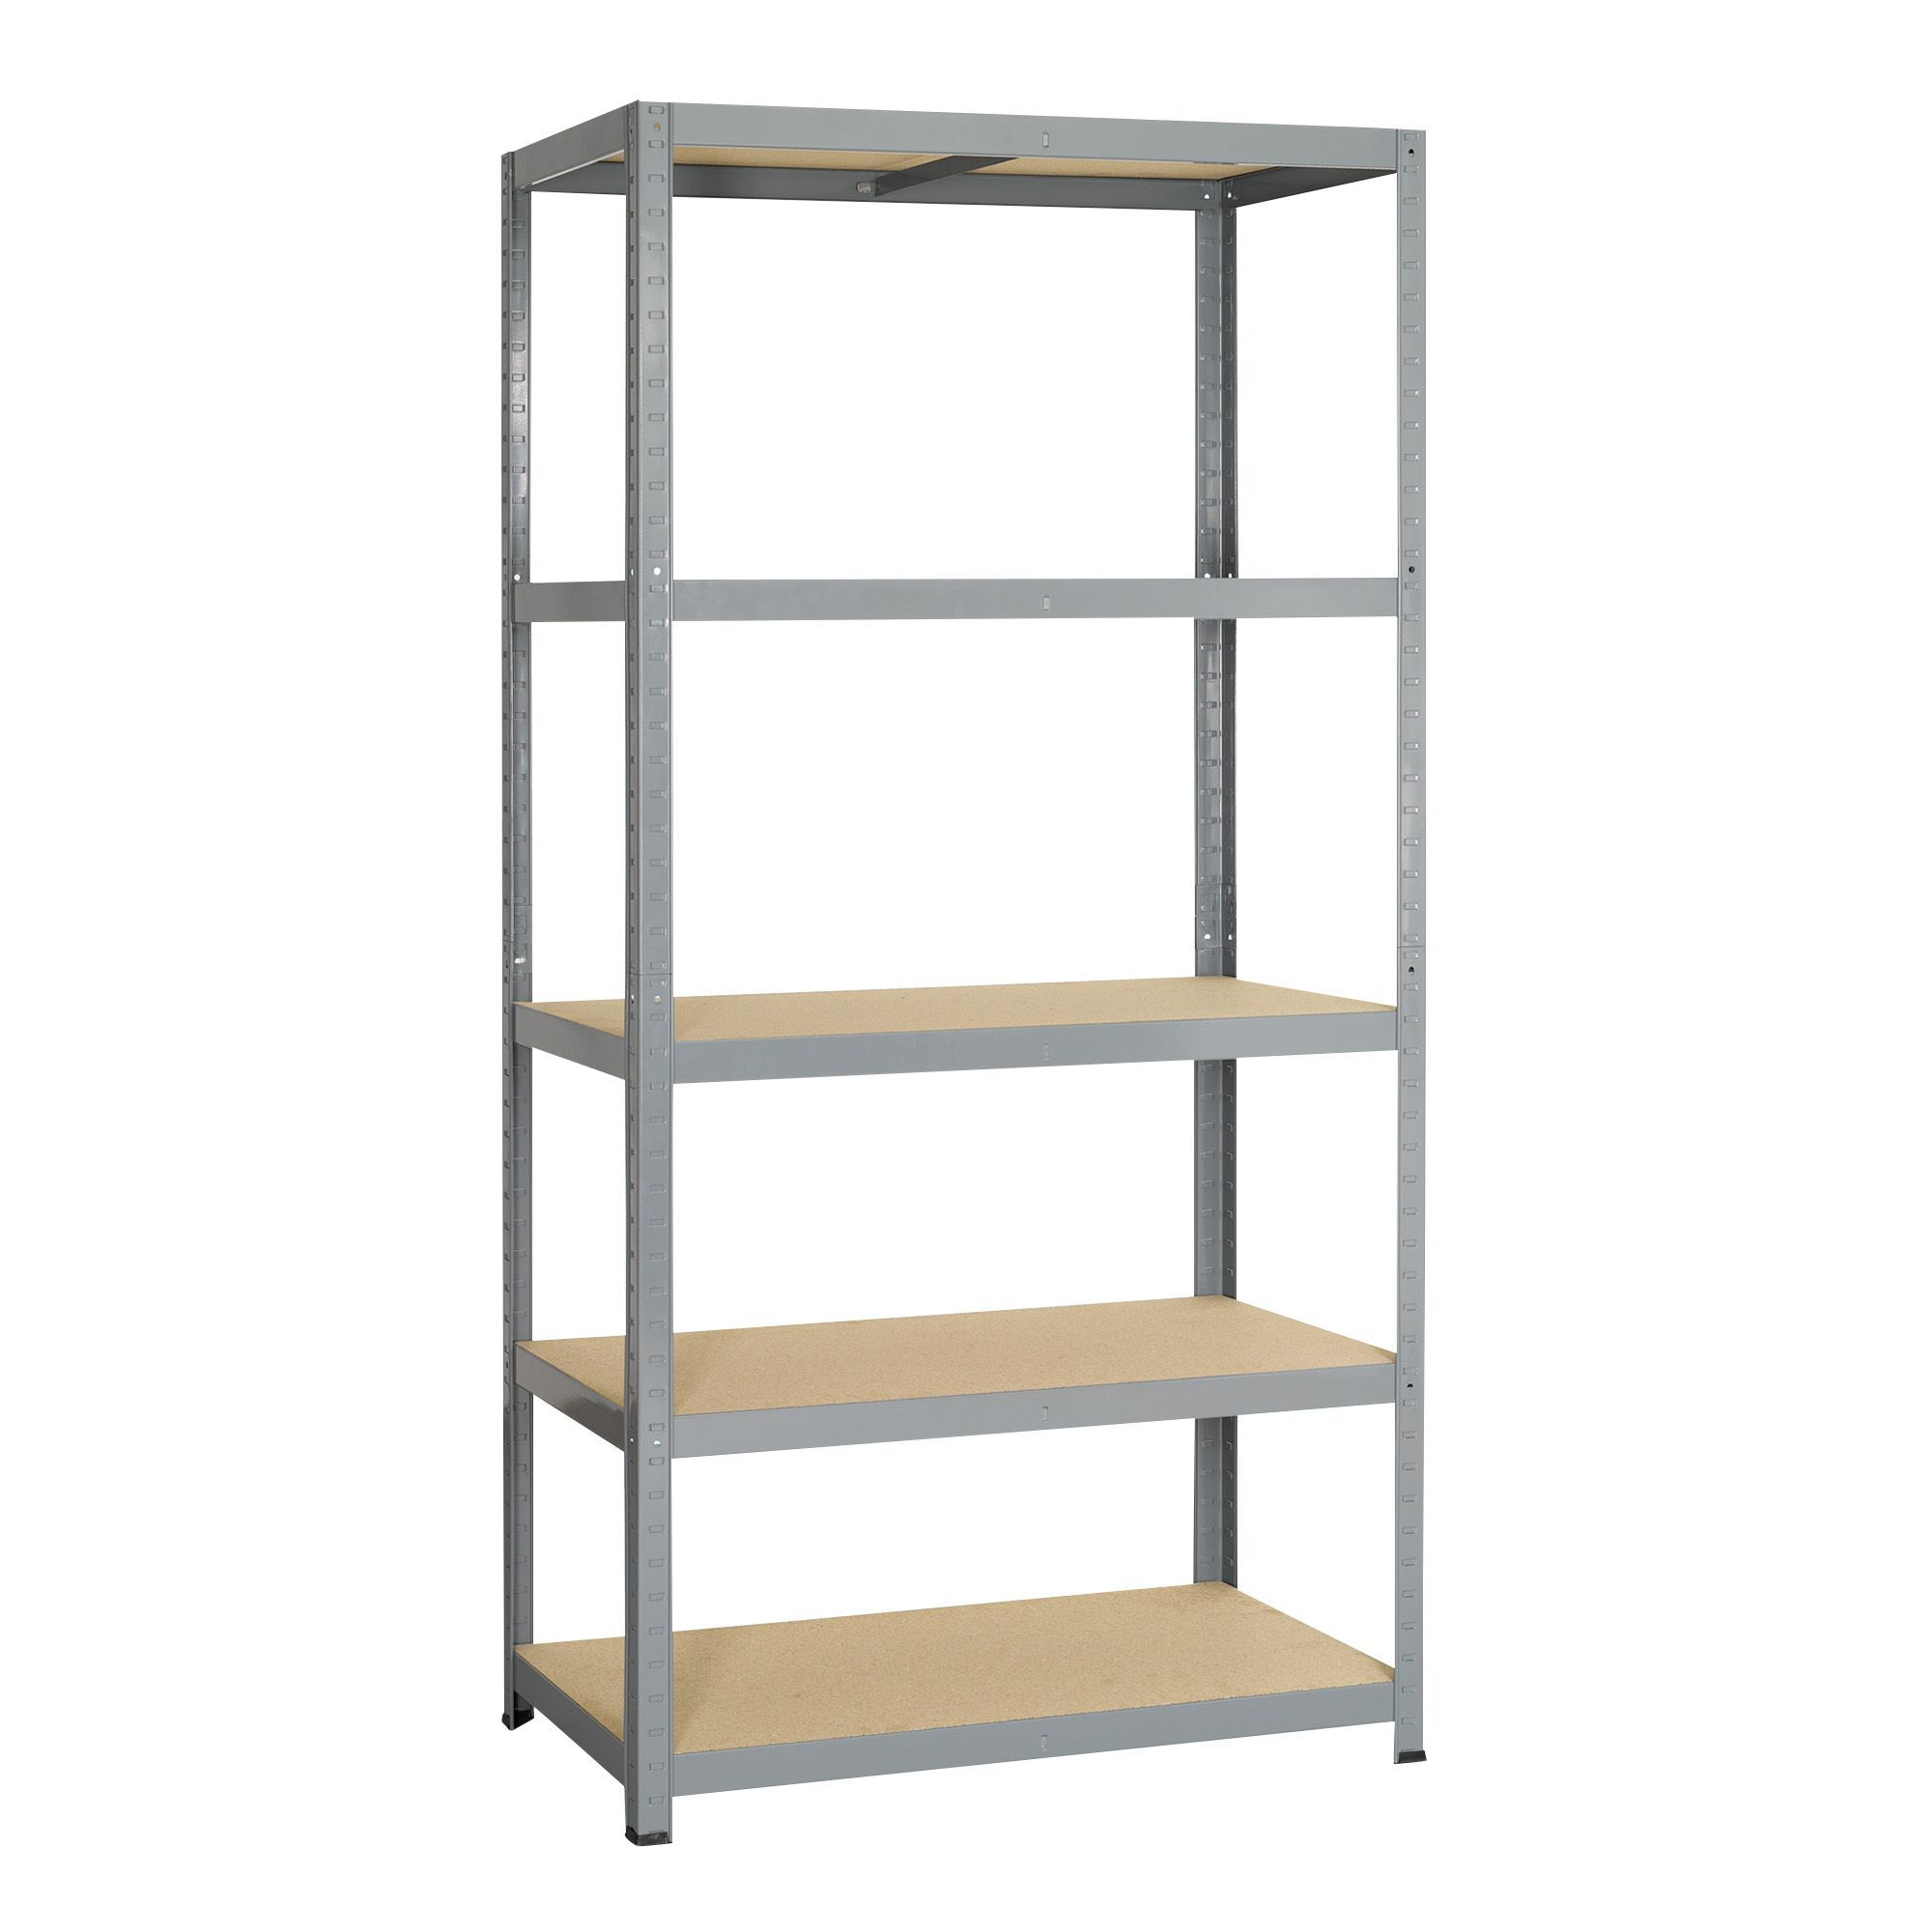 BampQ 5 Shelf Chipboard amp Steel Shelving Unit Departments DIY At